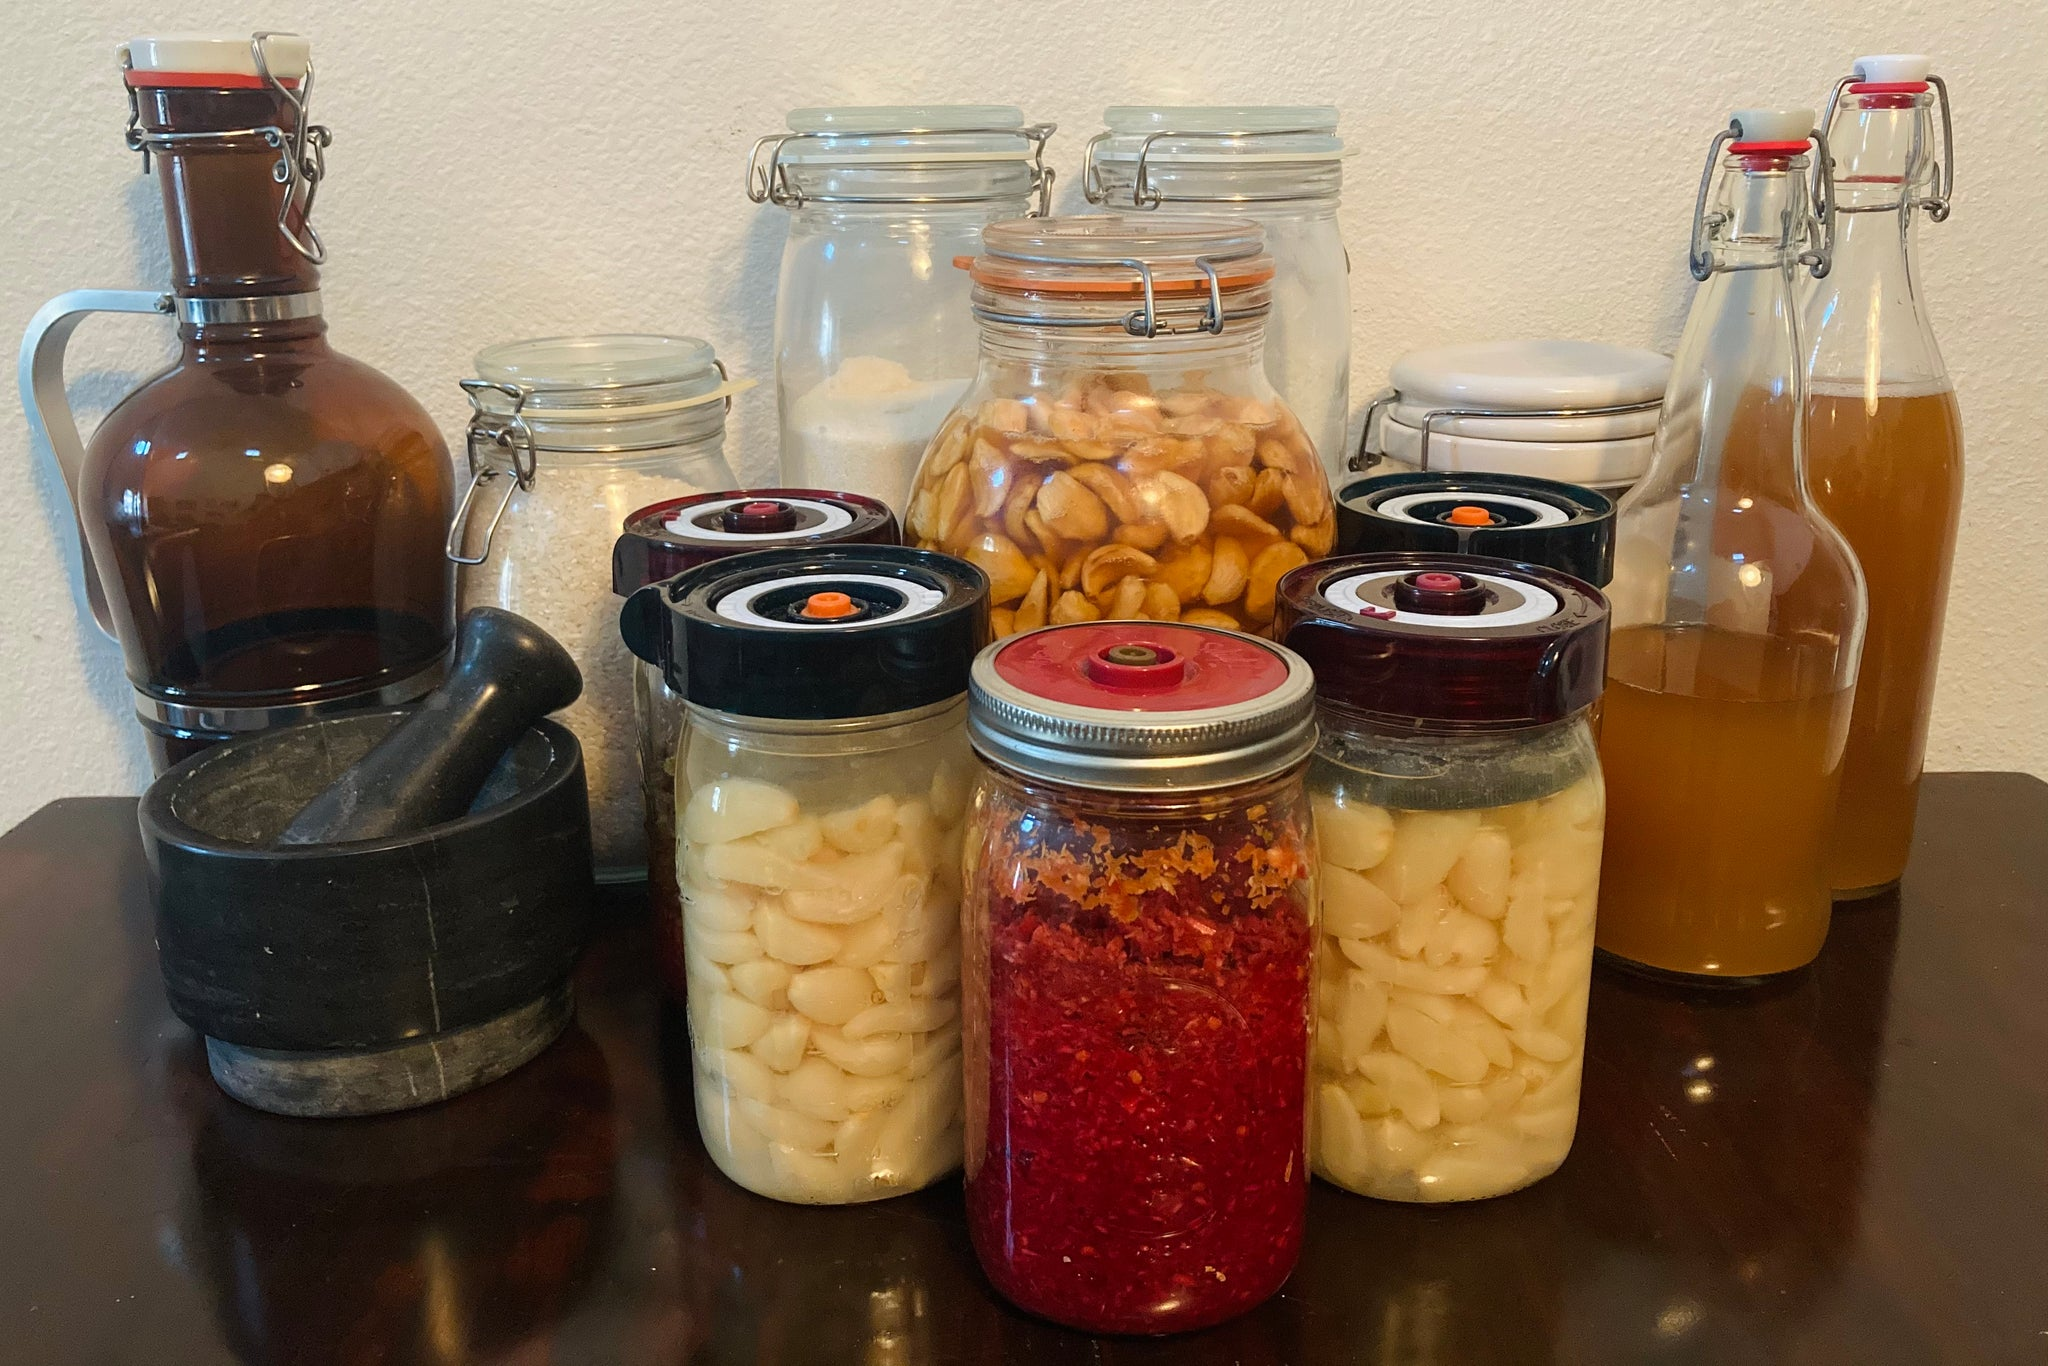 How to Get Started in Fermentation